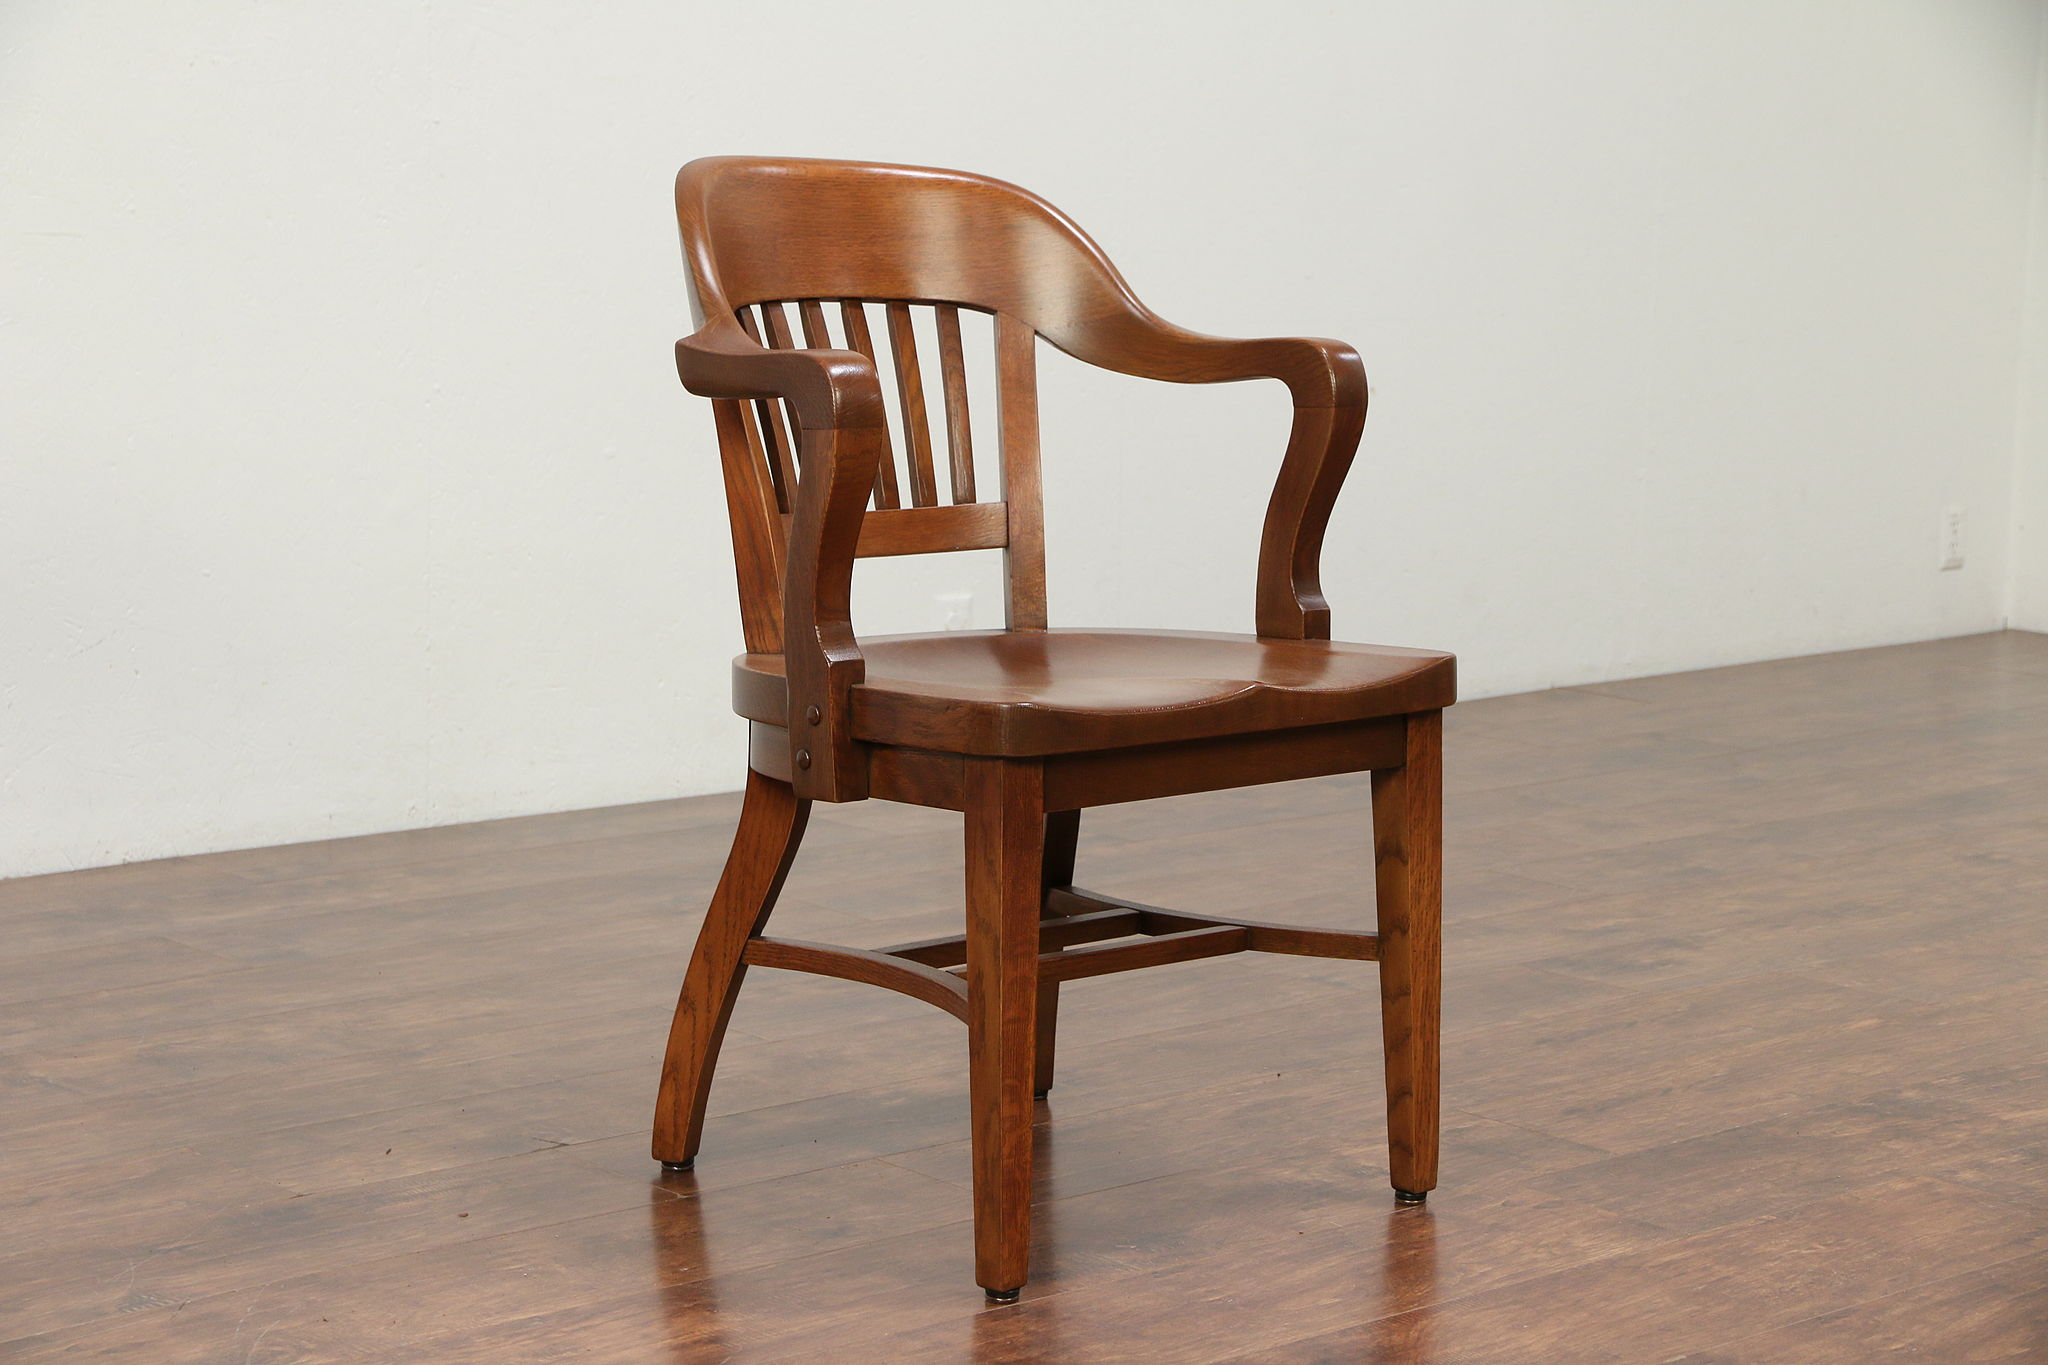 Sold Oak 1910 Antique Banker Library Desk Or Office Chair With Arms 29960 Harp Gallery Antiques Furniture